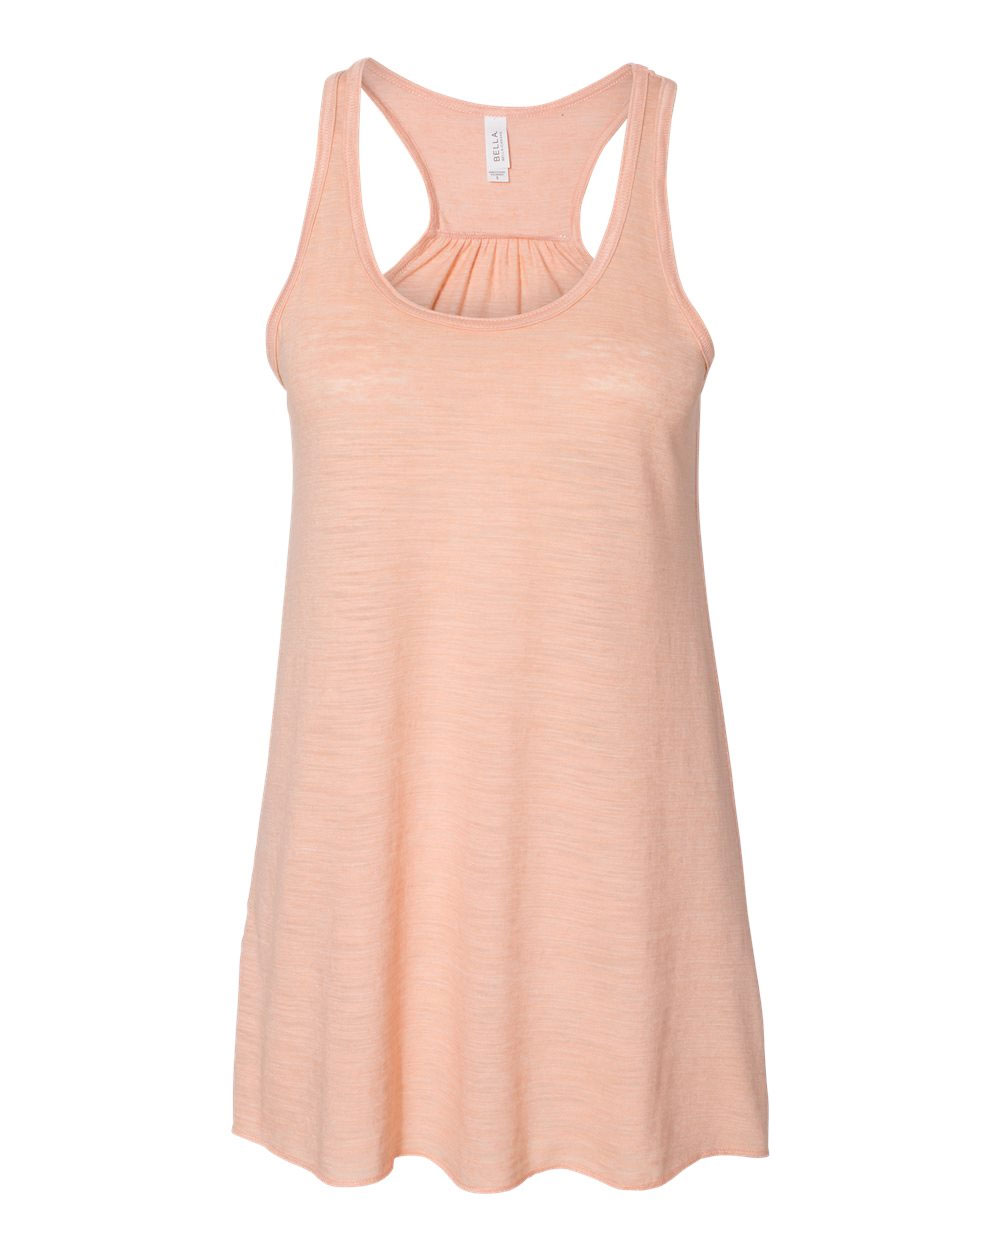 Bella + Canvas Ladies Flowy Racerback Tank